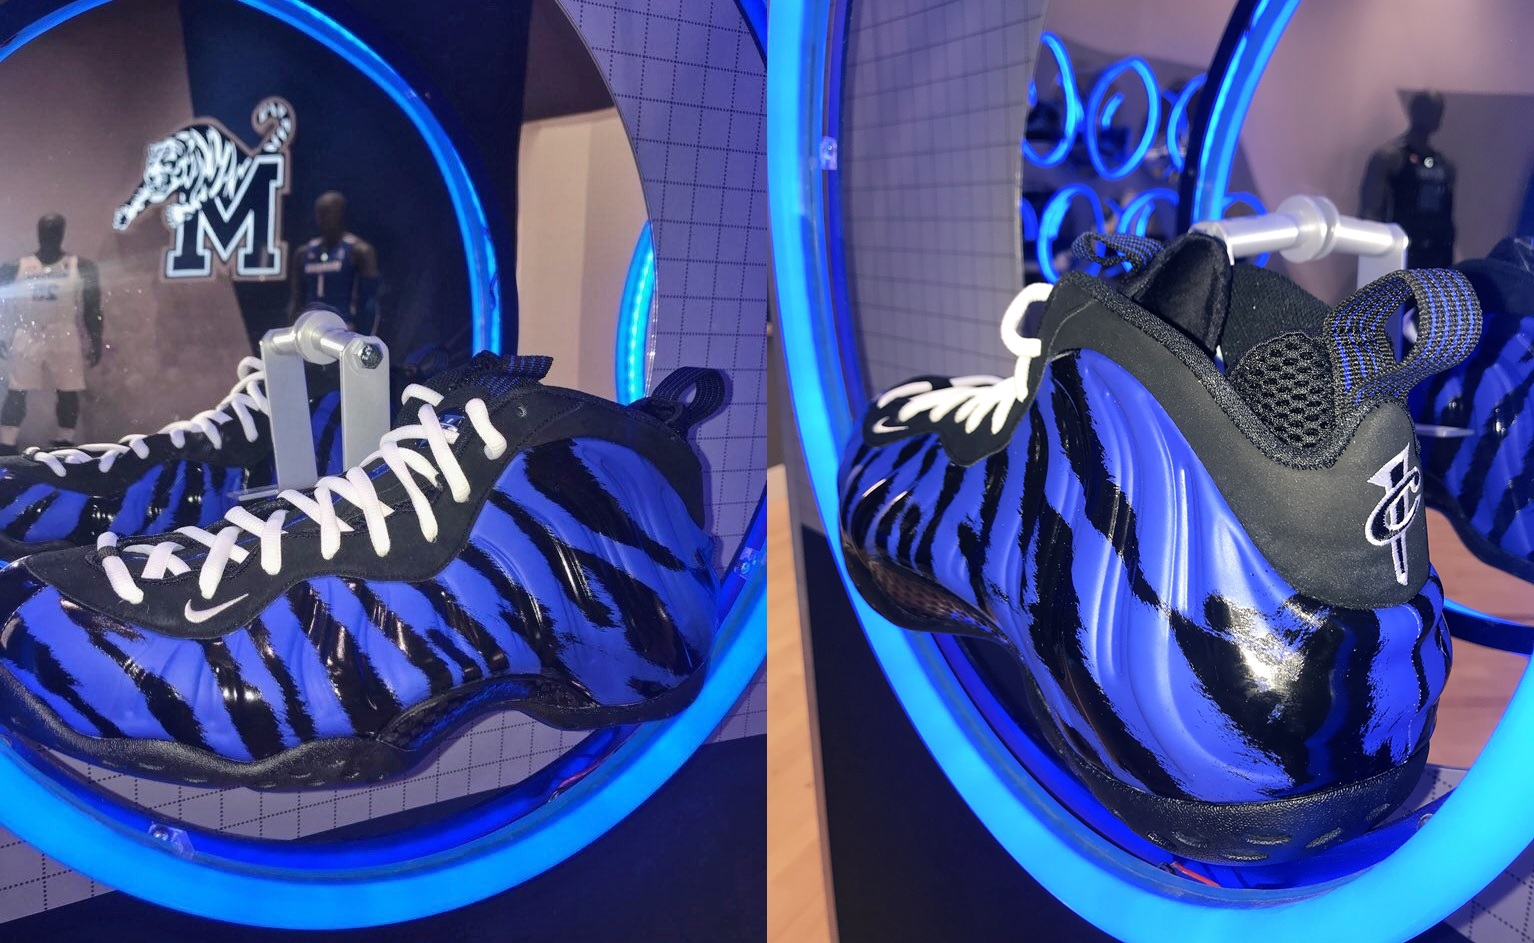 Authentic Nike Air Foamposite One Tianjin?